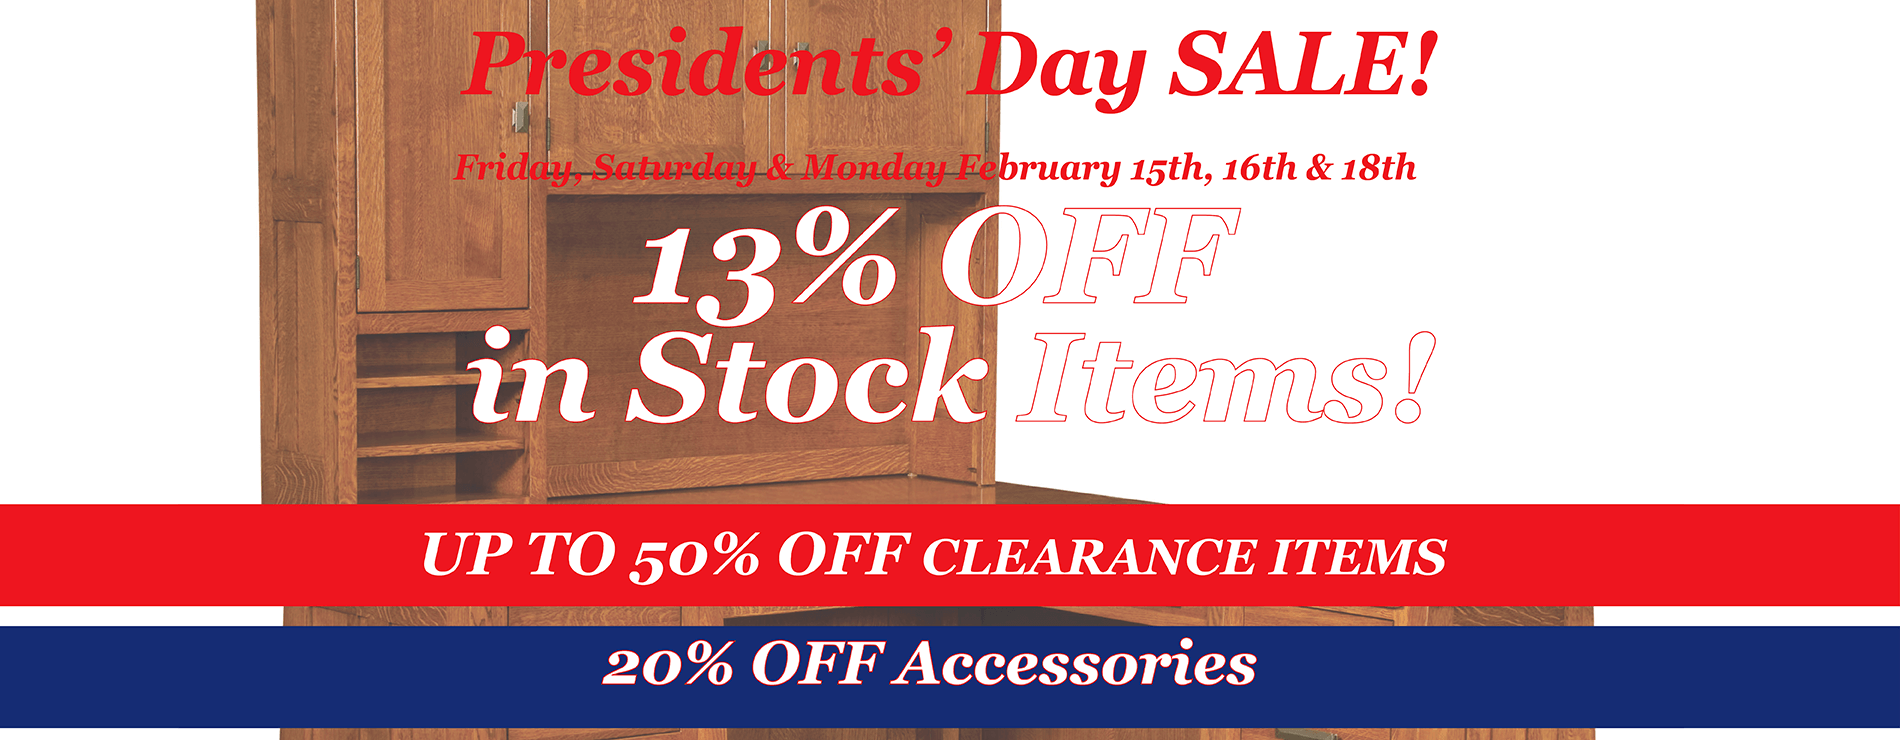 Amish Furniture Website Presidents Day Sale 2019